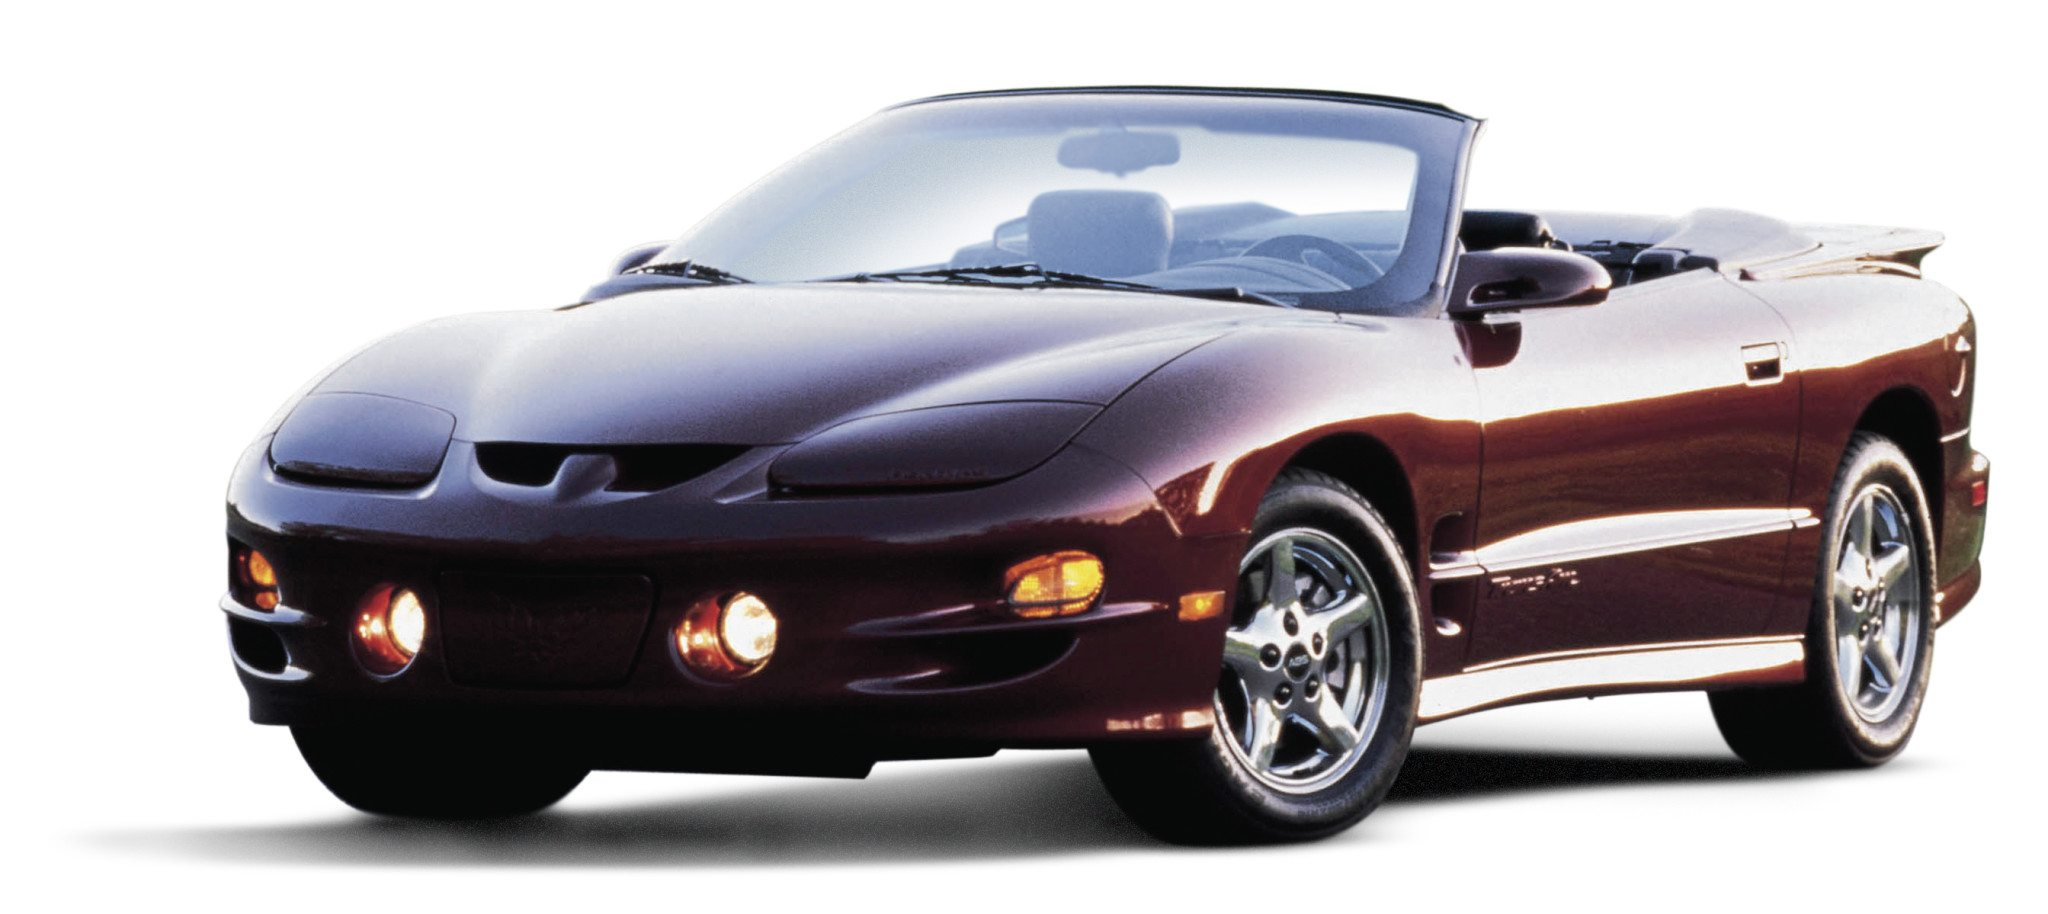 2002 Pontiac Firebird Trans Am Convertible